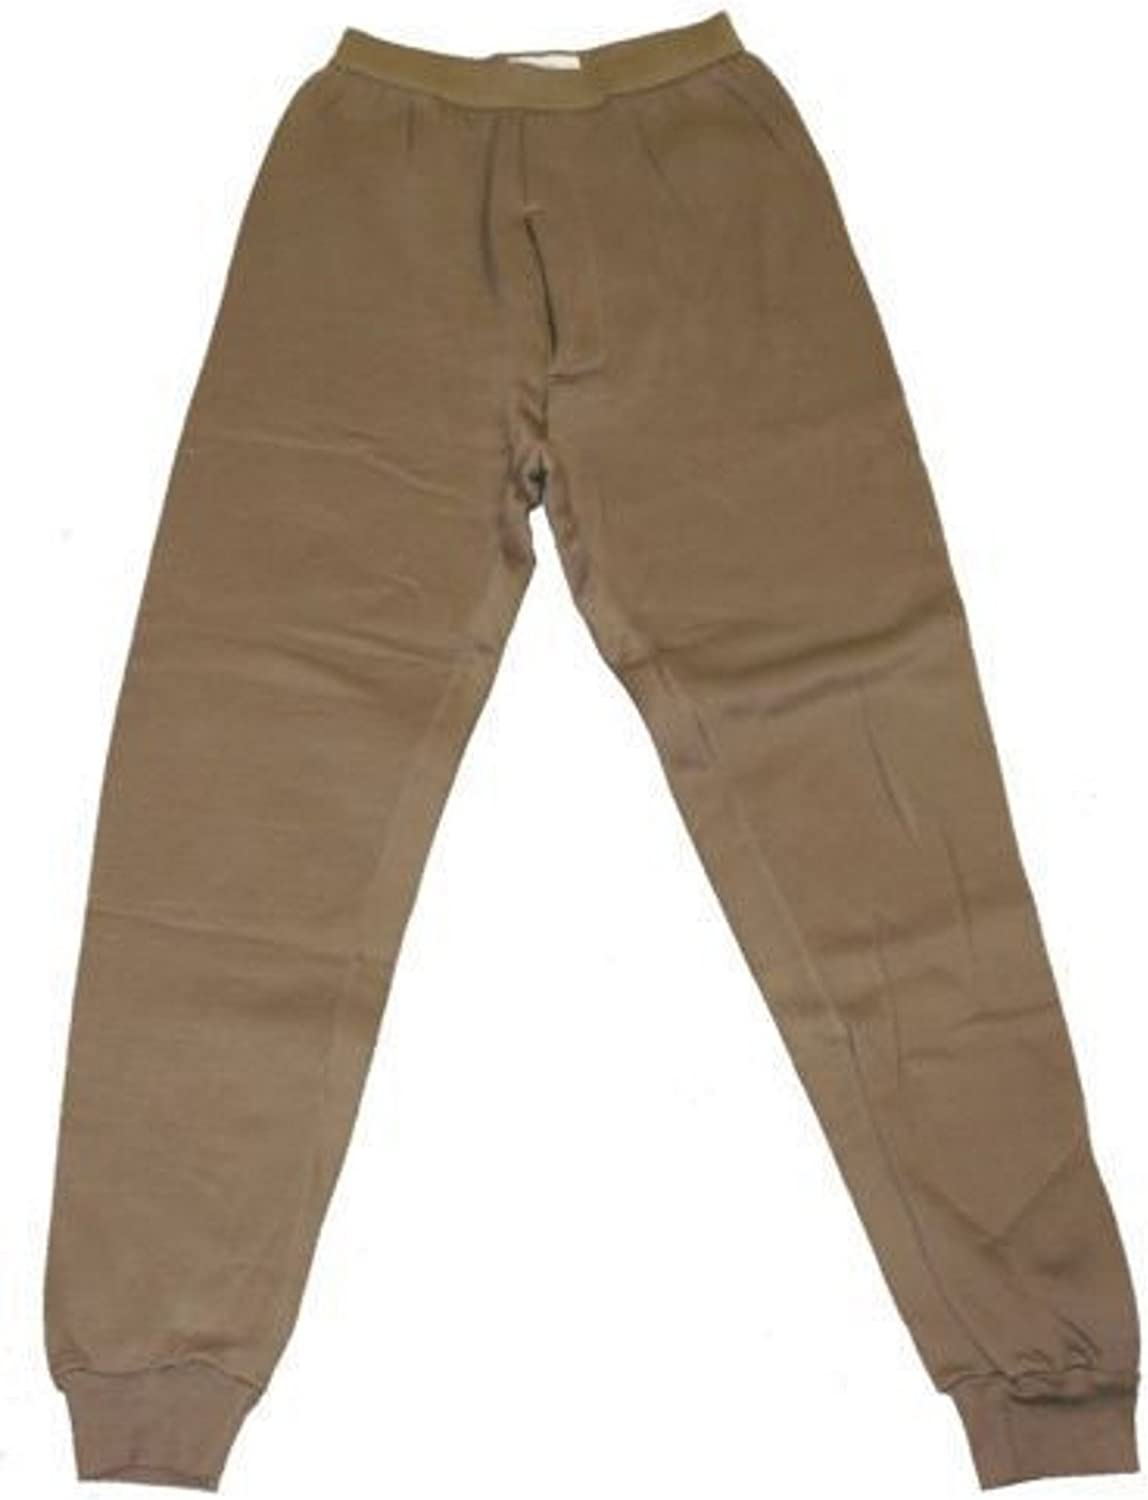 US Military Polypropylene Thermal Long Johns Underwear Drawers, Size Small -New in Bag USGI Extreme Cold